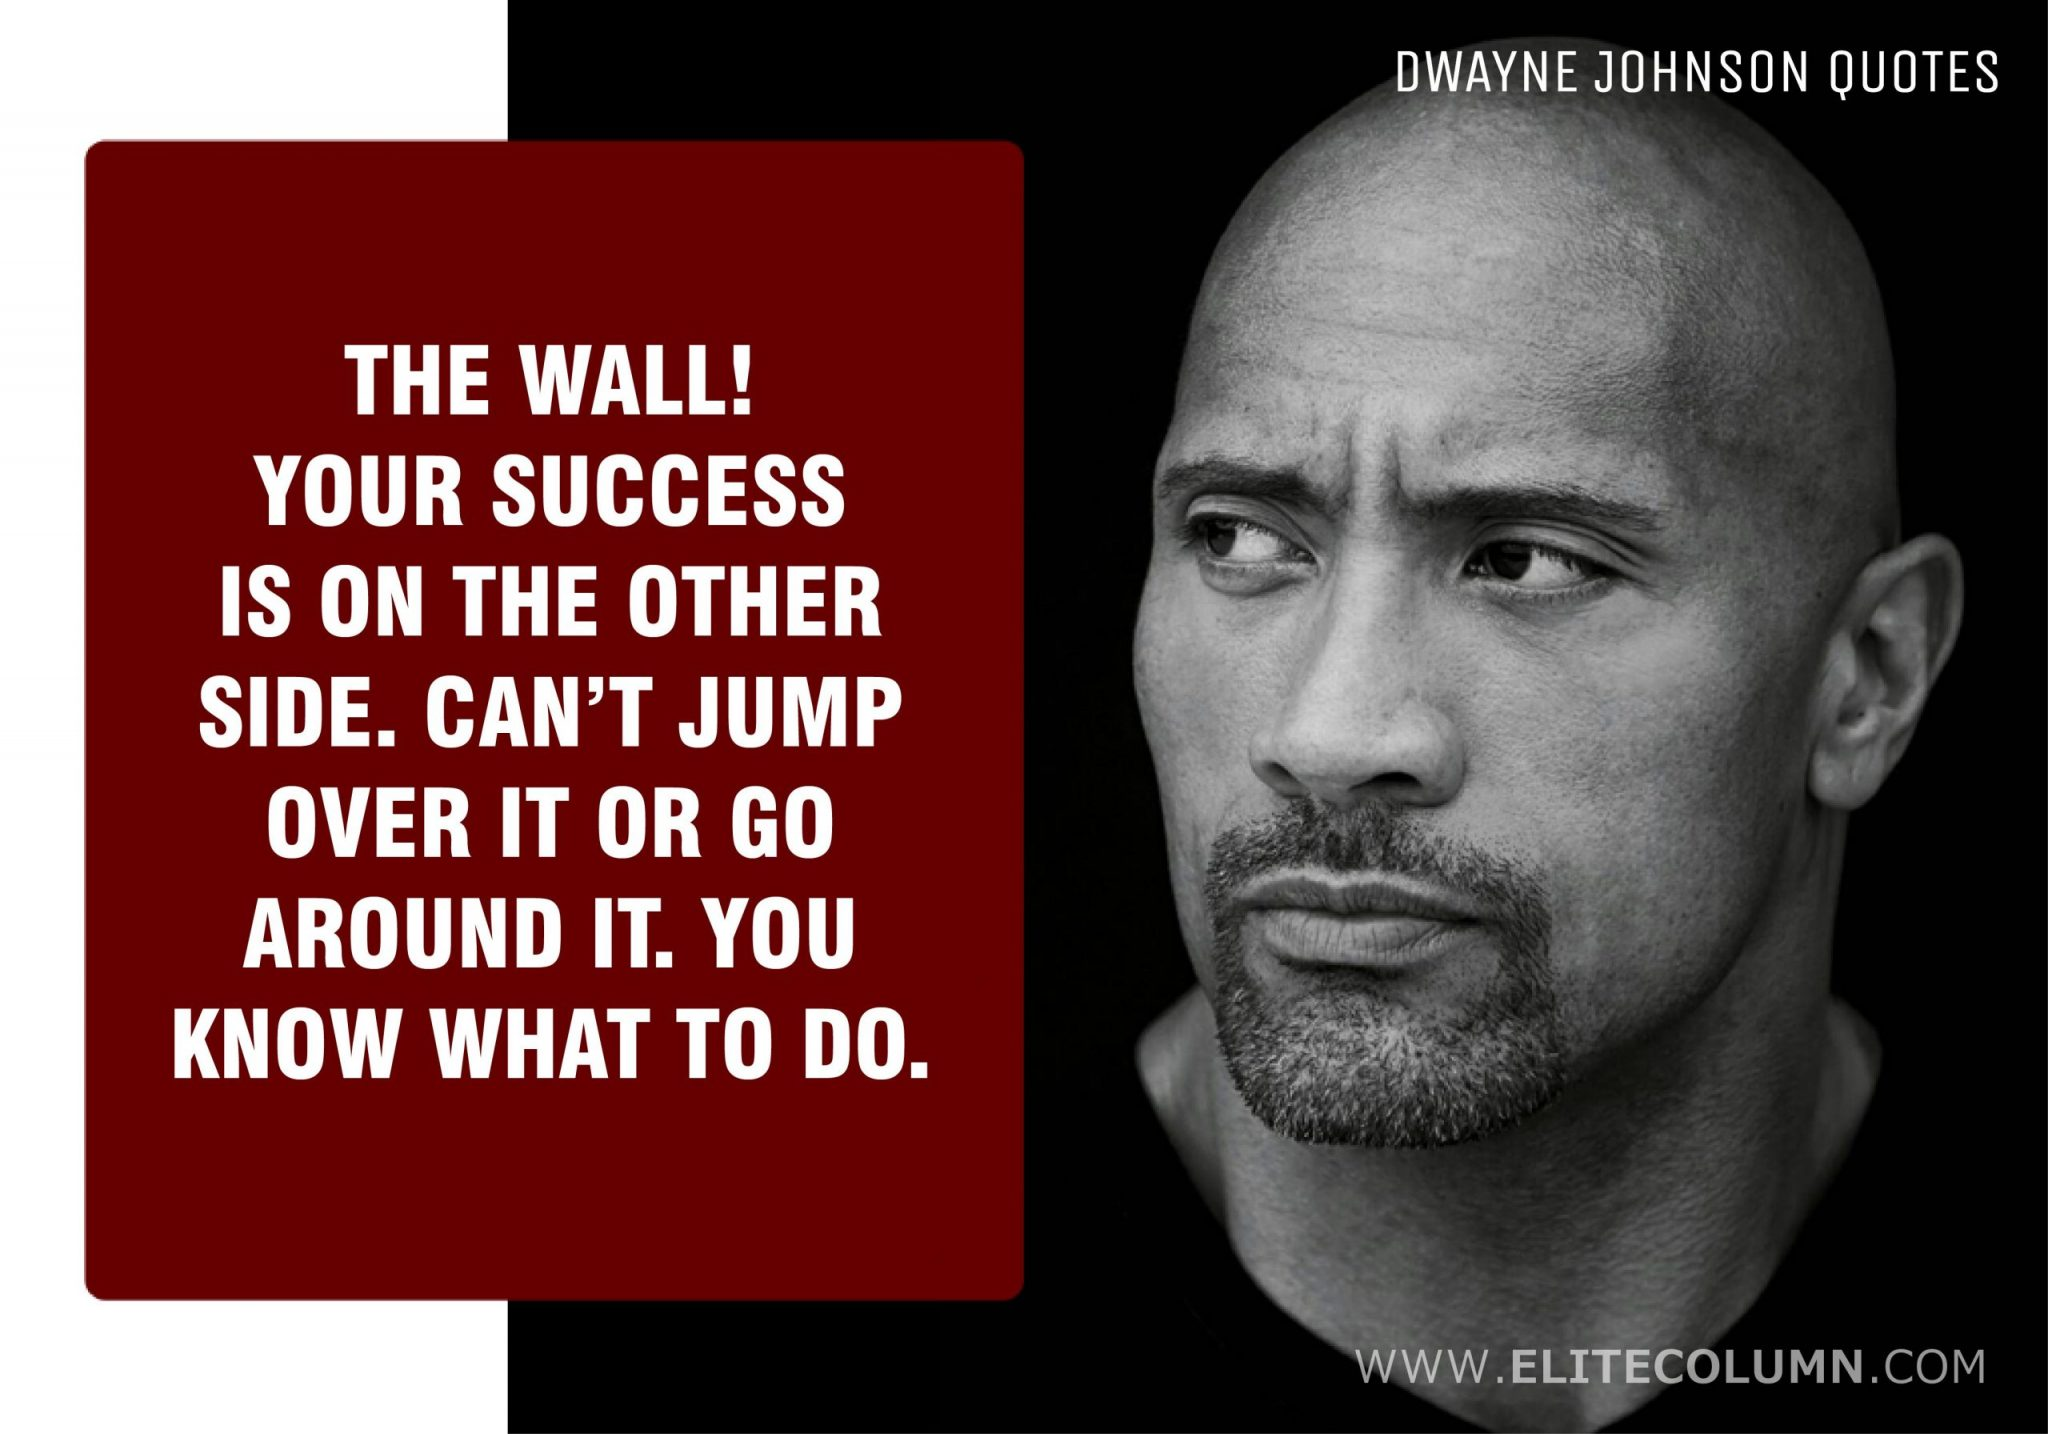 Dwayne Johnson Quotes (6)